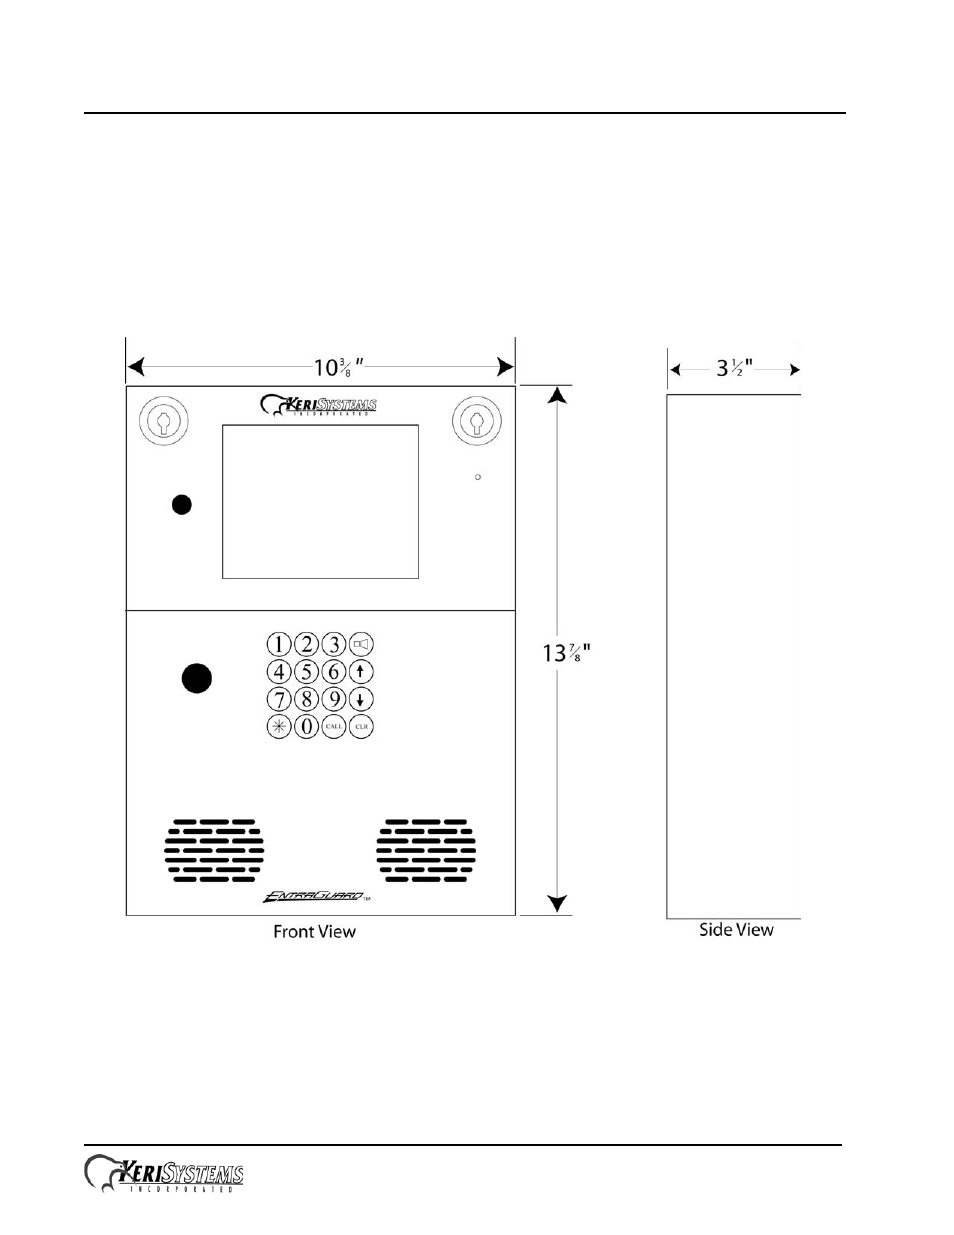 keri systems entraguard platinum installation guide page1 keri systems entraguard platinum installation guide user manual Magnetic Door Locks Access Control at creativeand.co